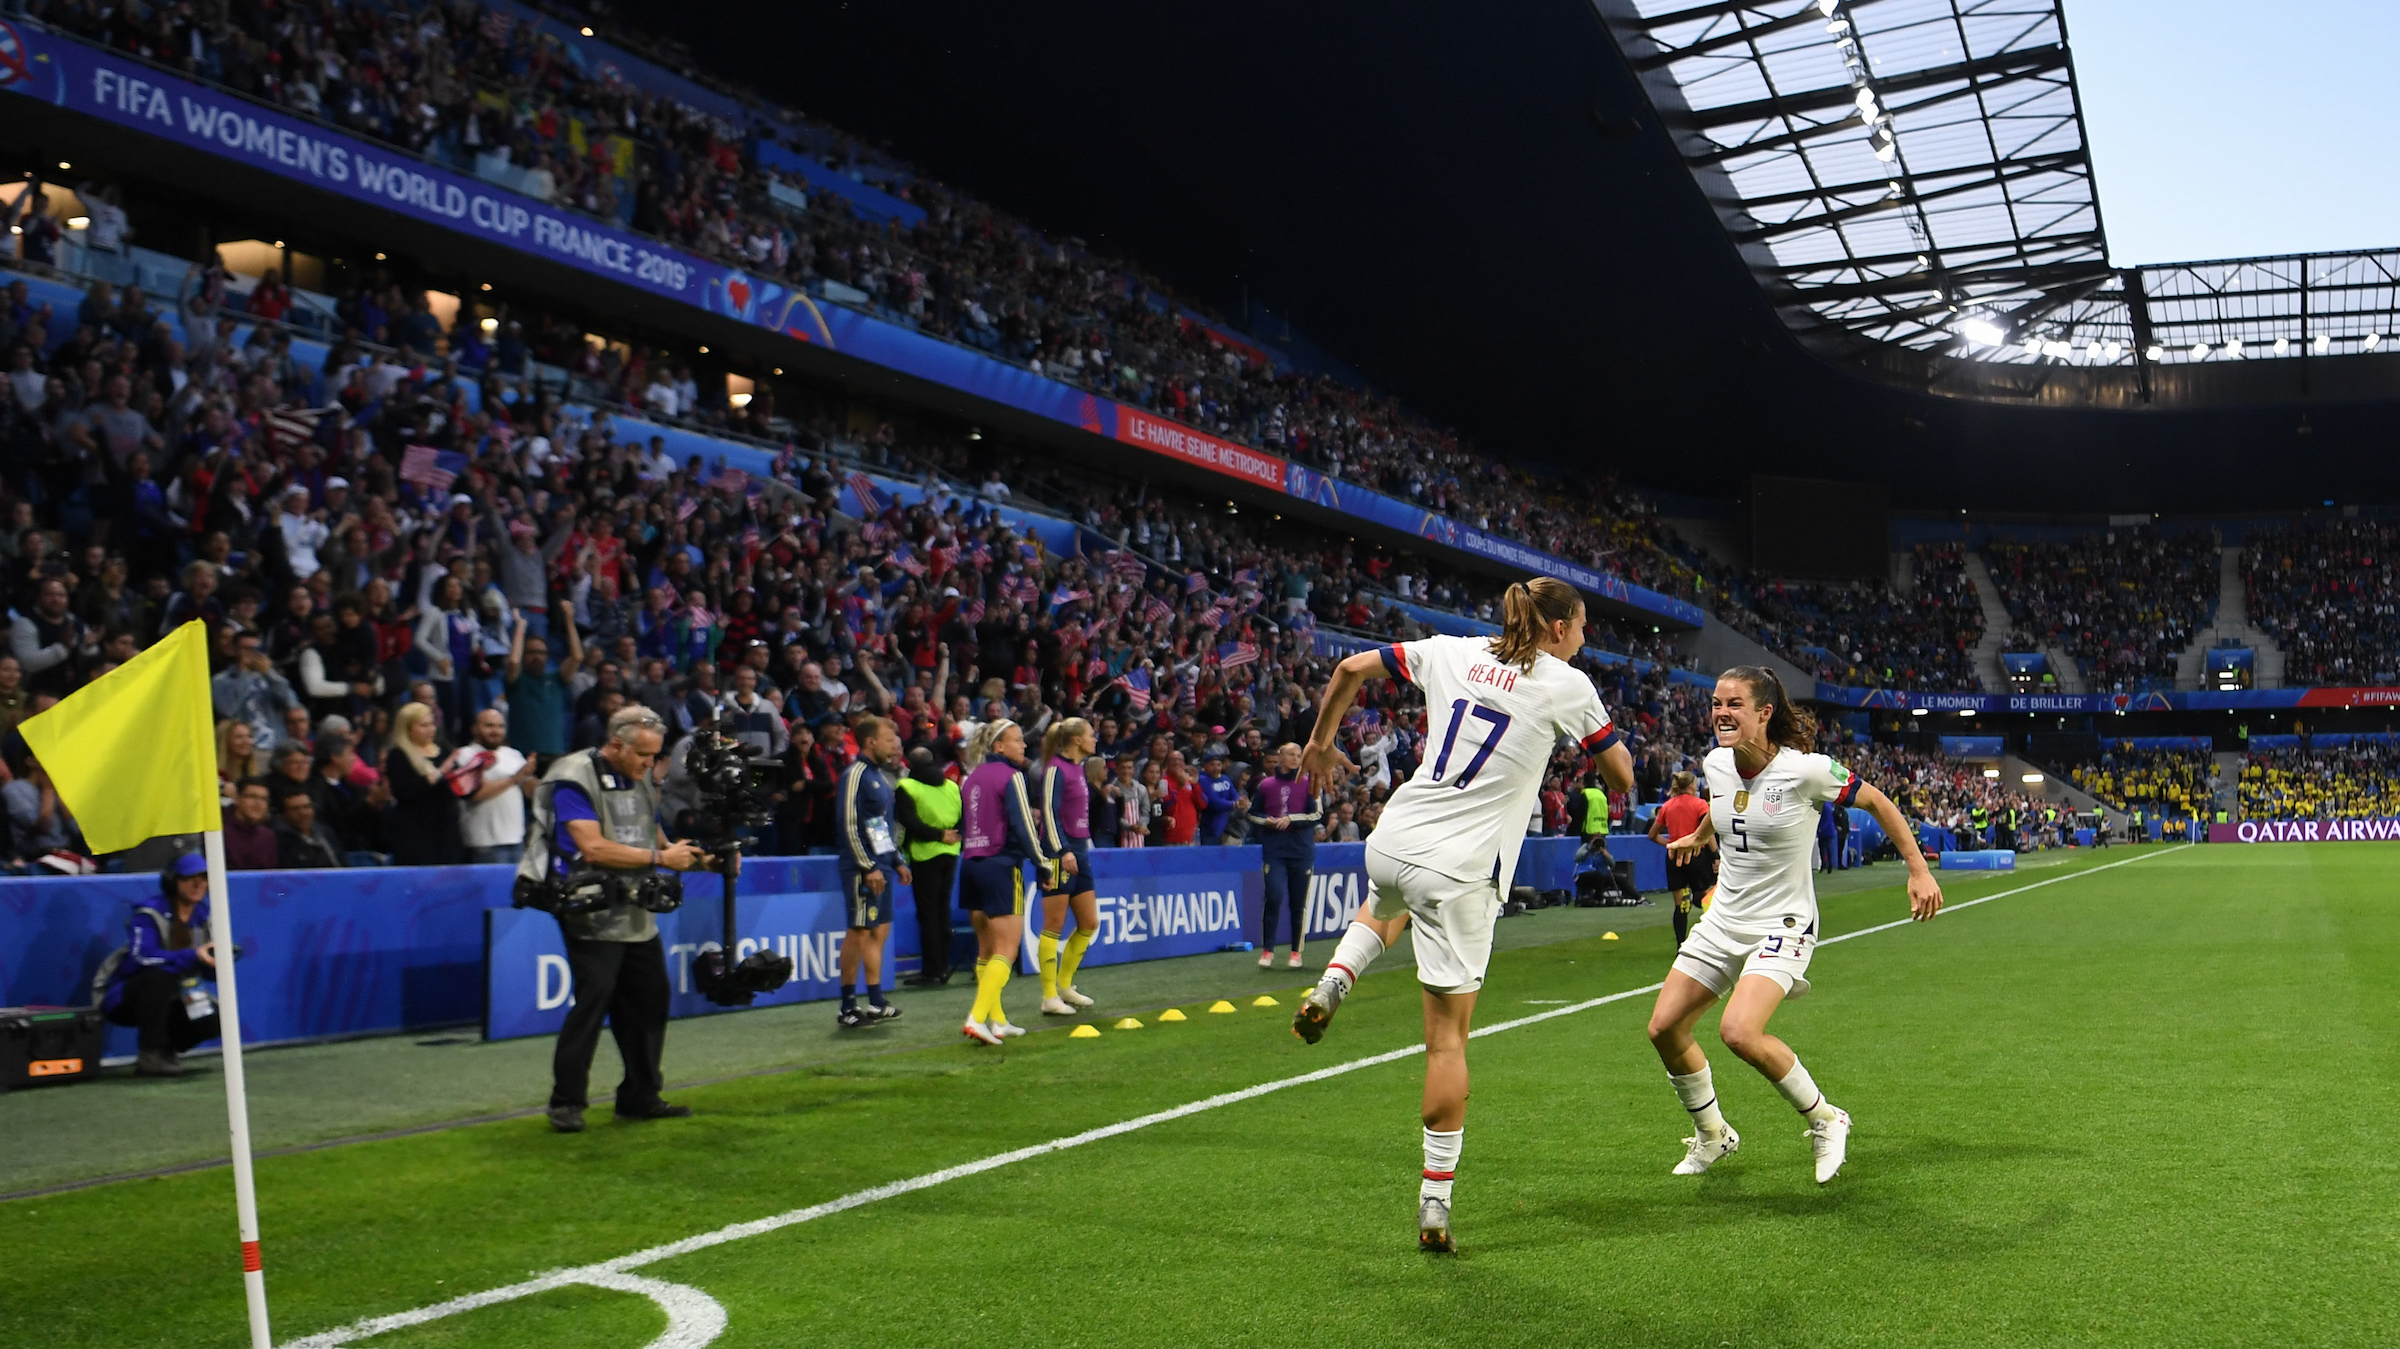 Sweden World Cup 2020.Uswnt Schedule Set For 2020 Concacaf Women S Olympic